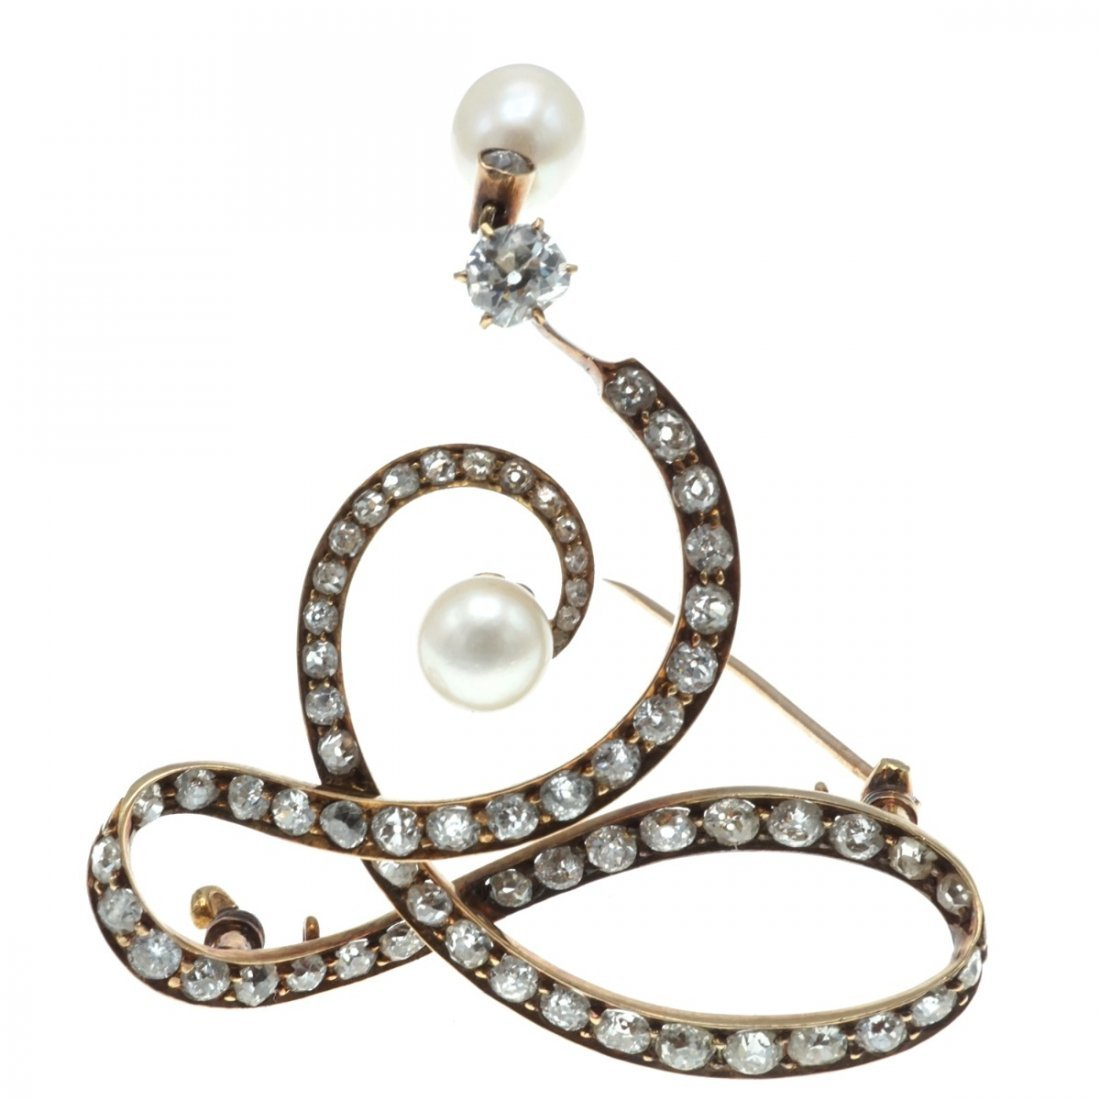 VICTORIAN NATURAL PEARL AND DIAMOND BROOCH - 4